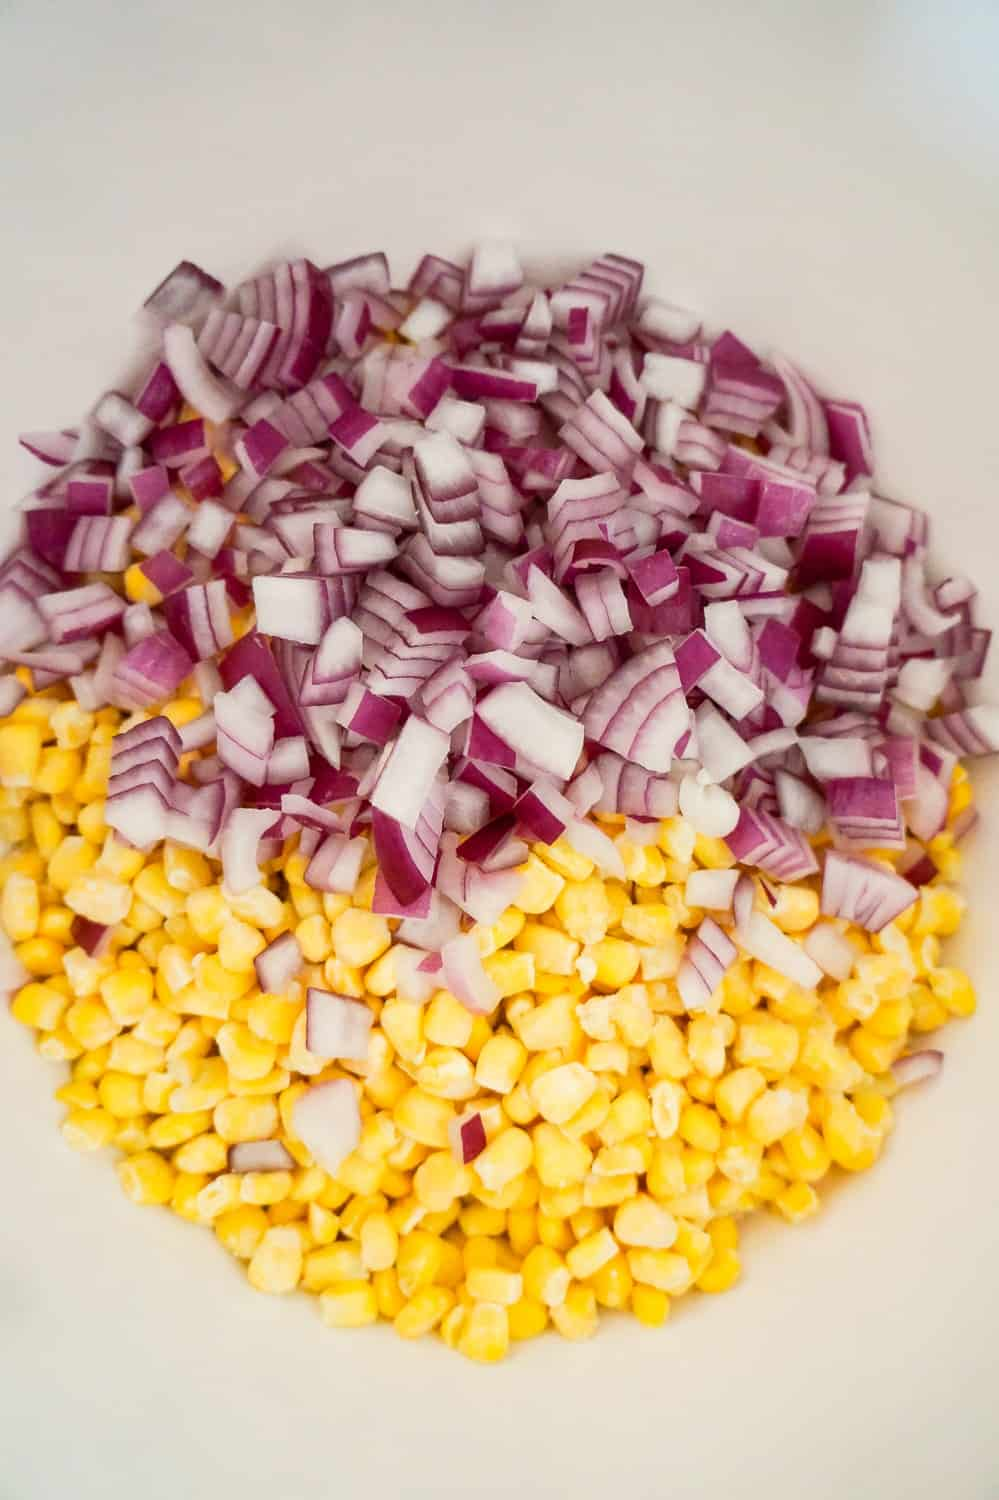 diced red onions and frozen corn in a mixing bowl